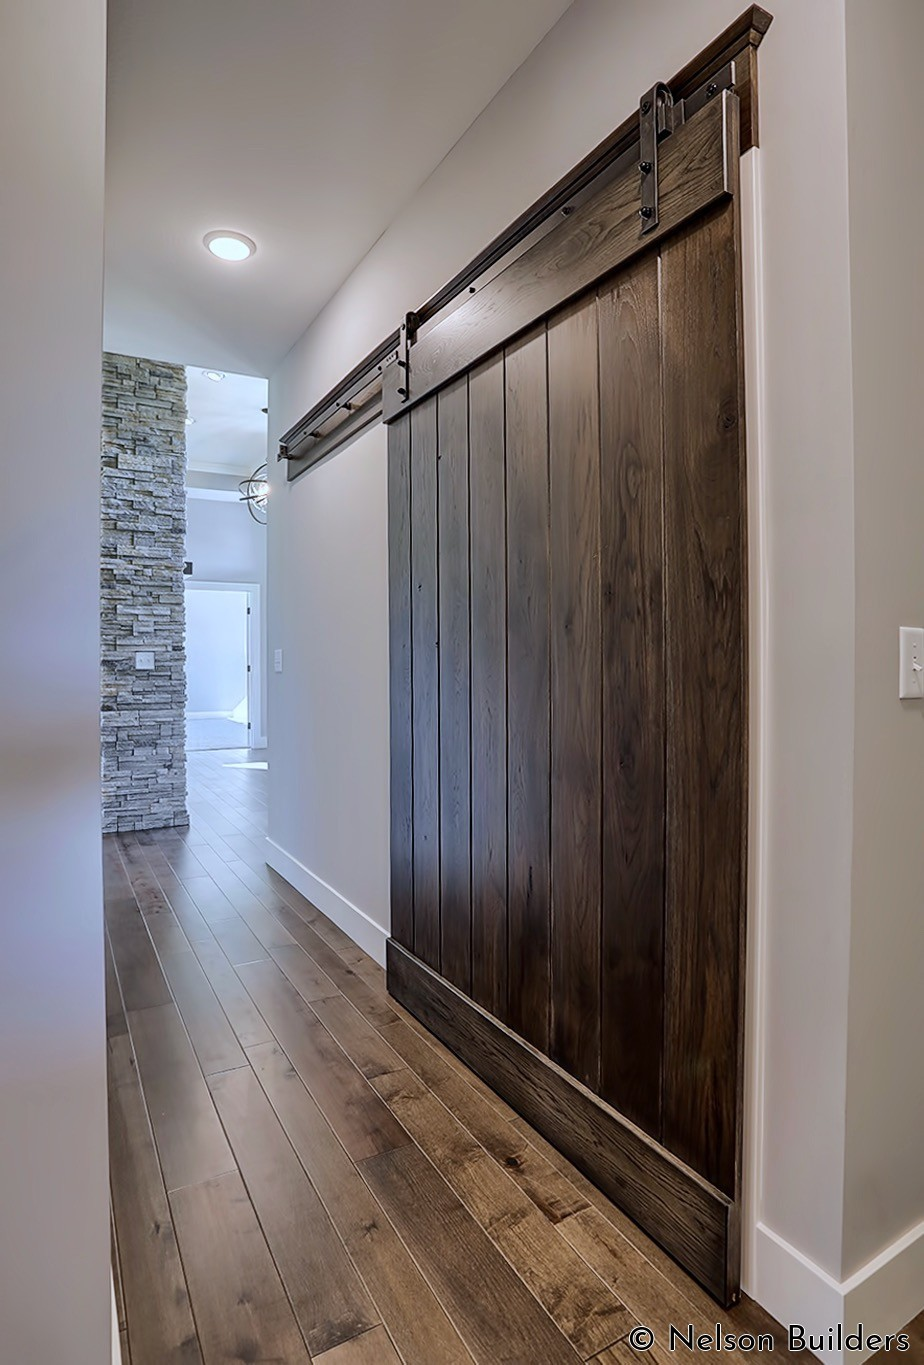 The massive barn door in the back hallway allows the cubbie area to be hidden if needed.